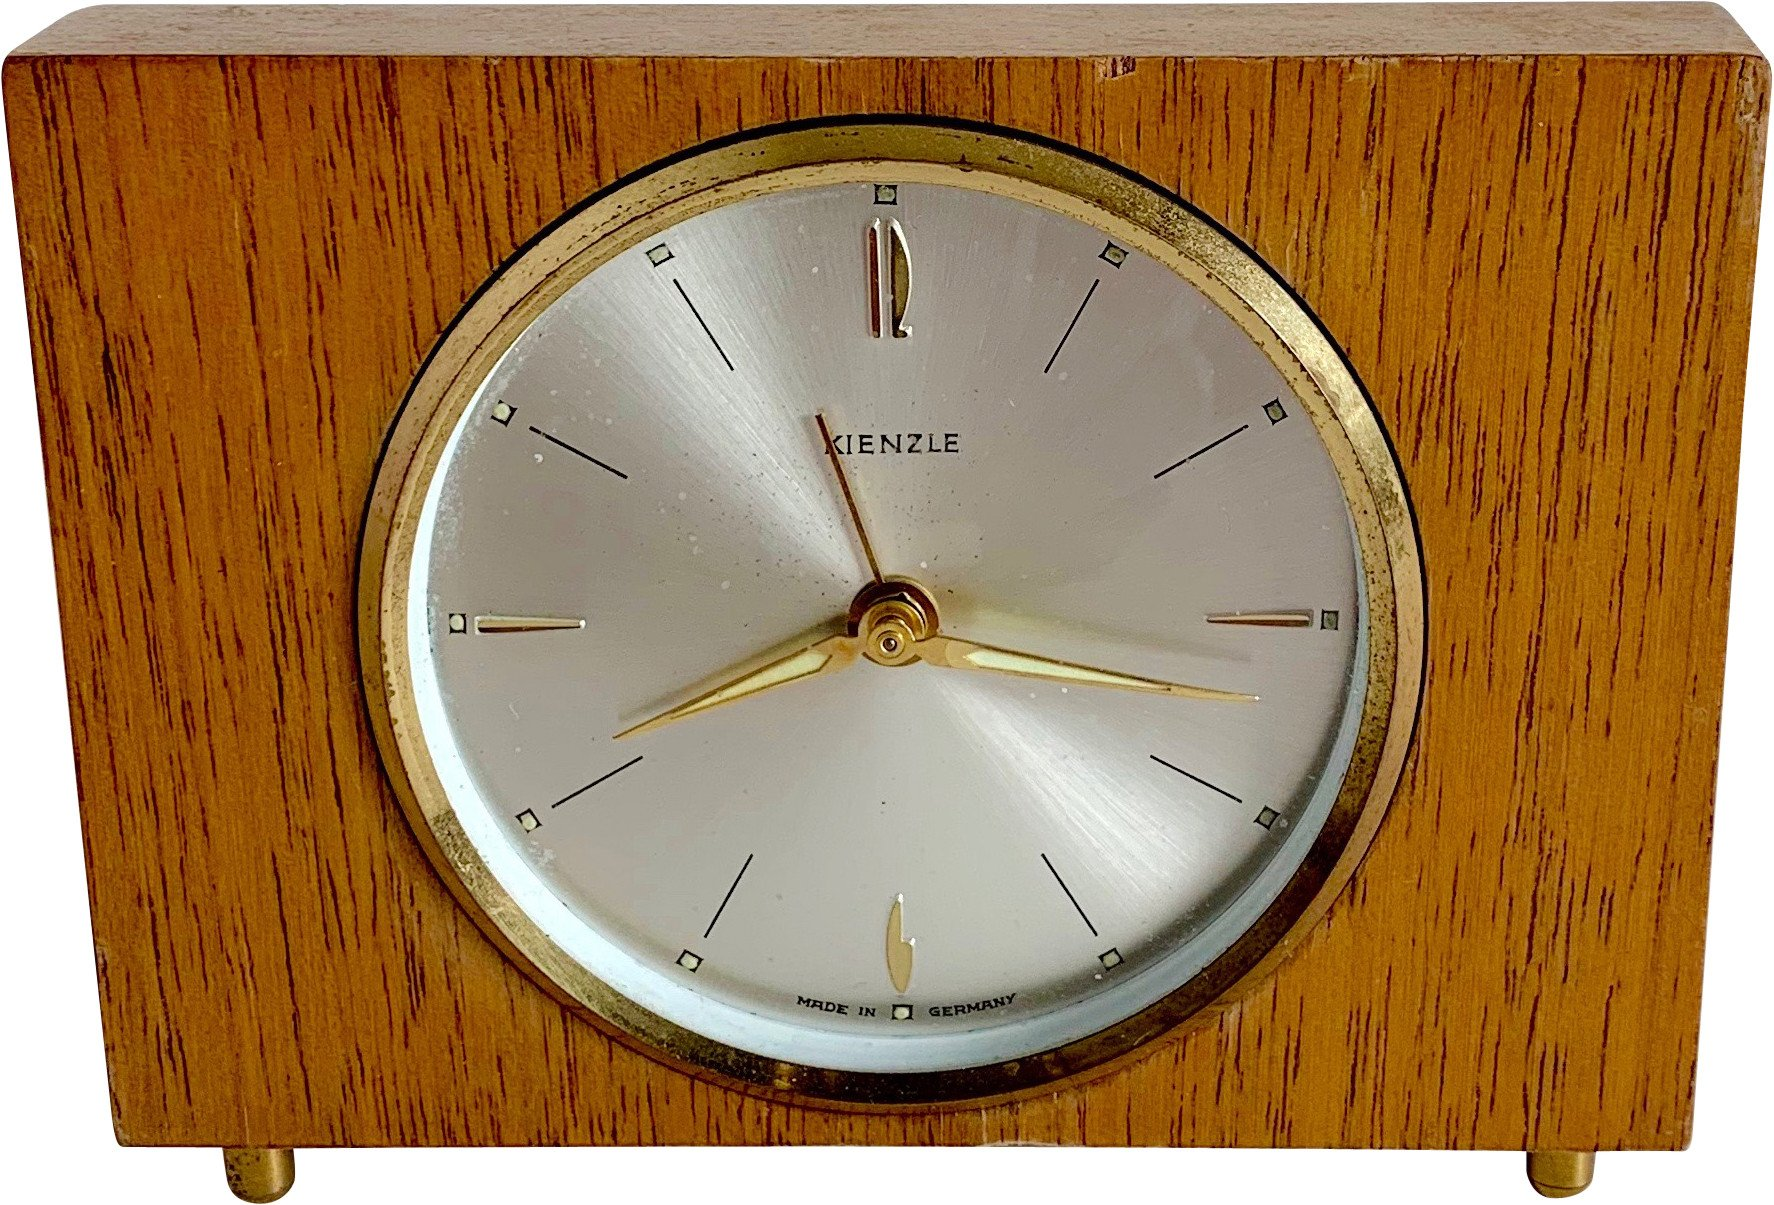 Clock, Kienzle, Germany, 1960s